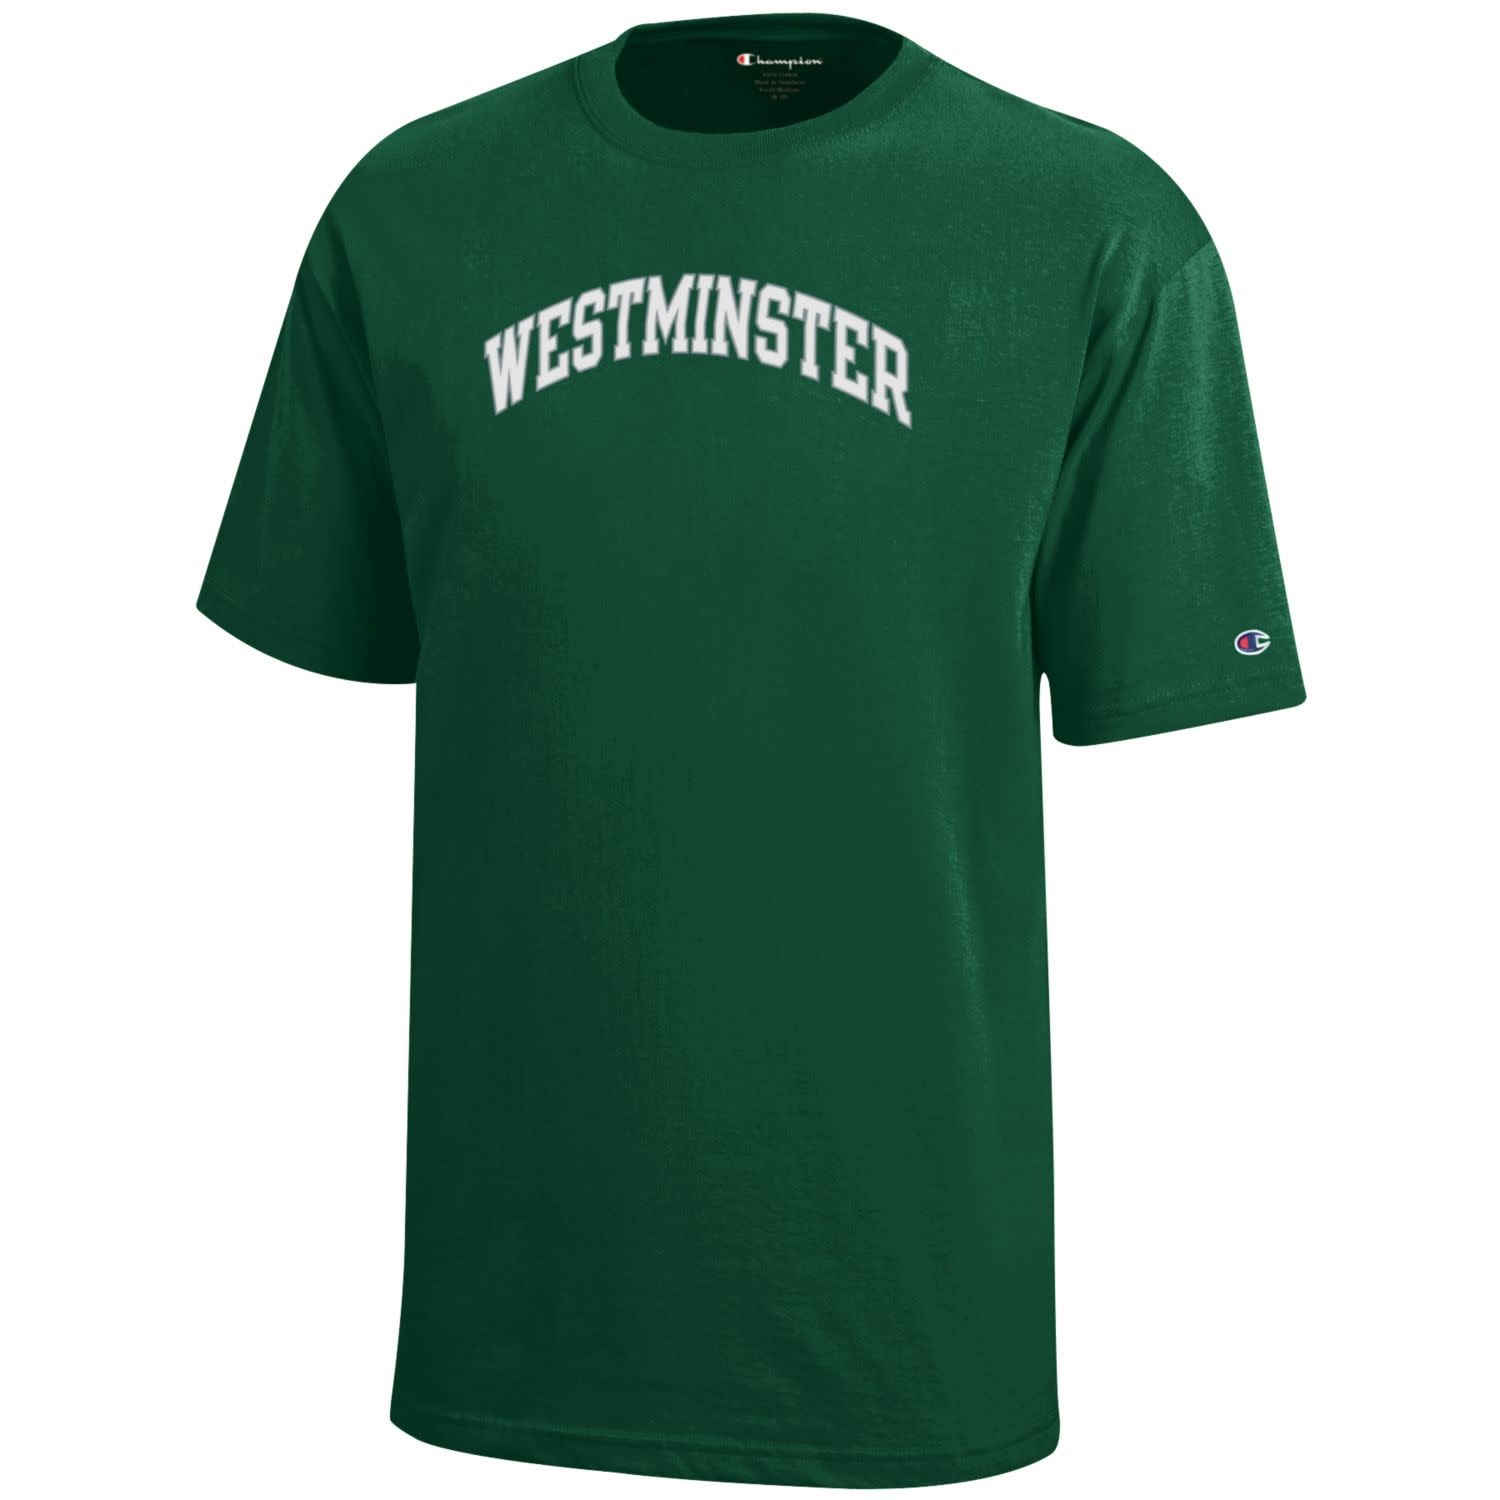 Champion T: Champion Green Westminster